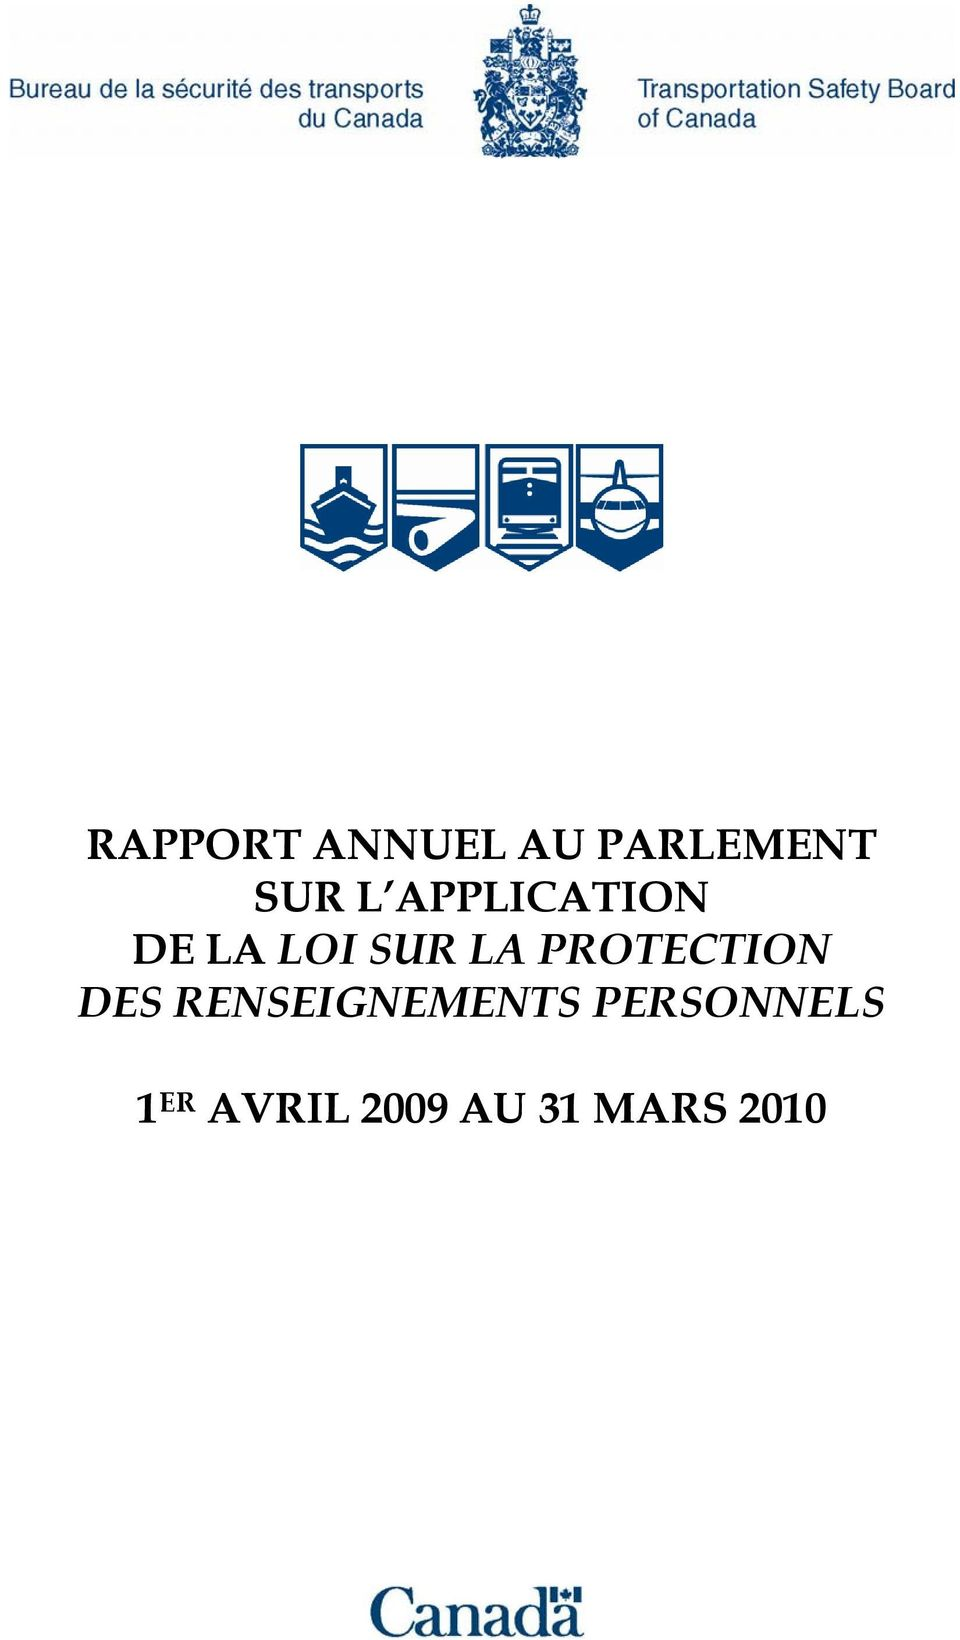 PROTECTION DES RENSEIGNEMENTS